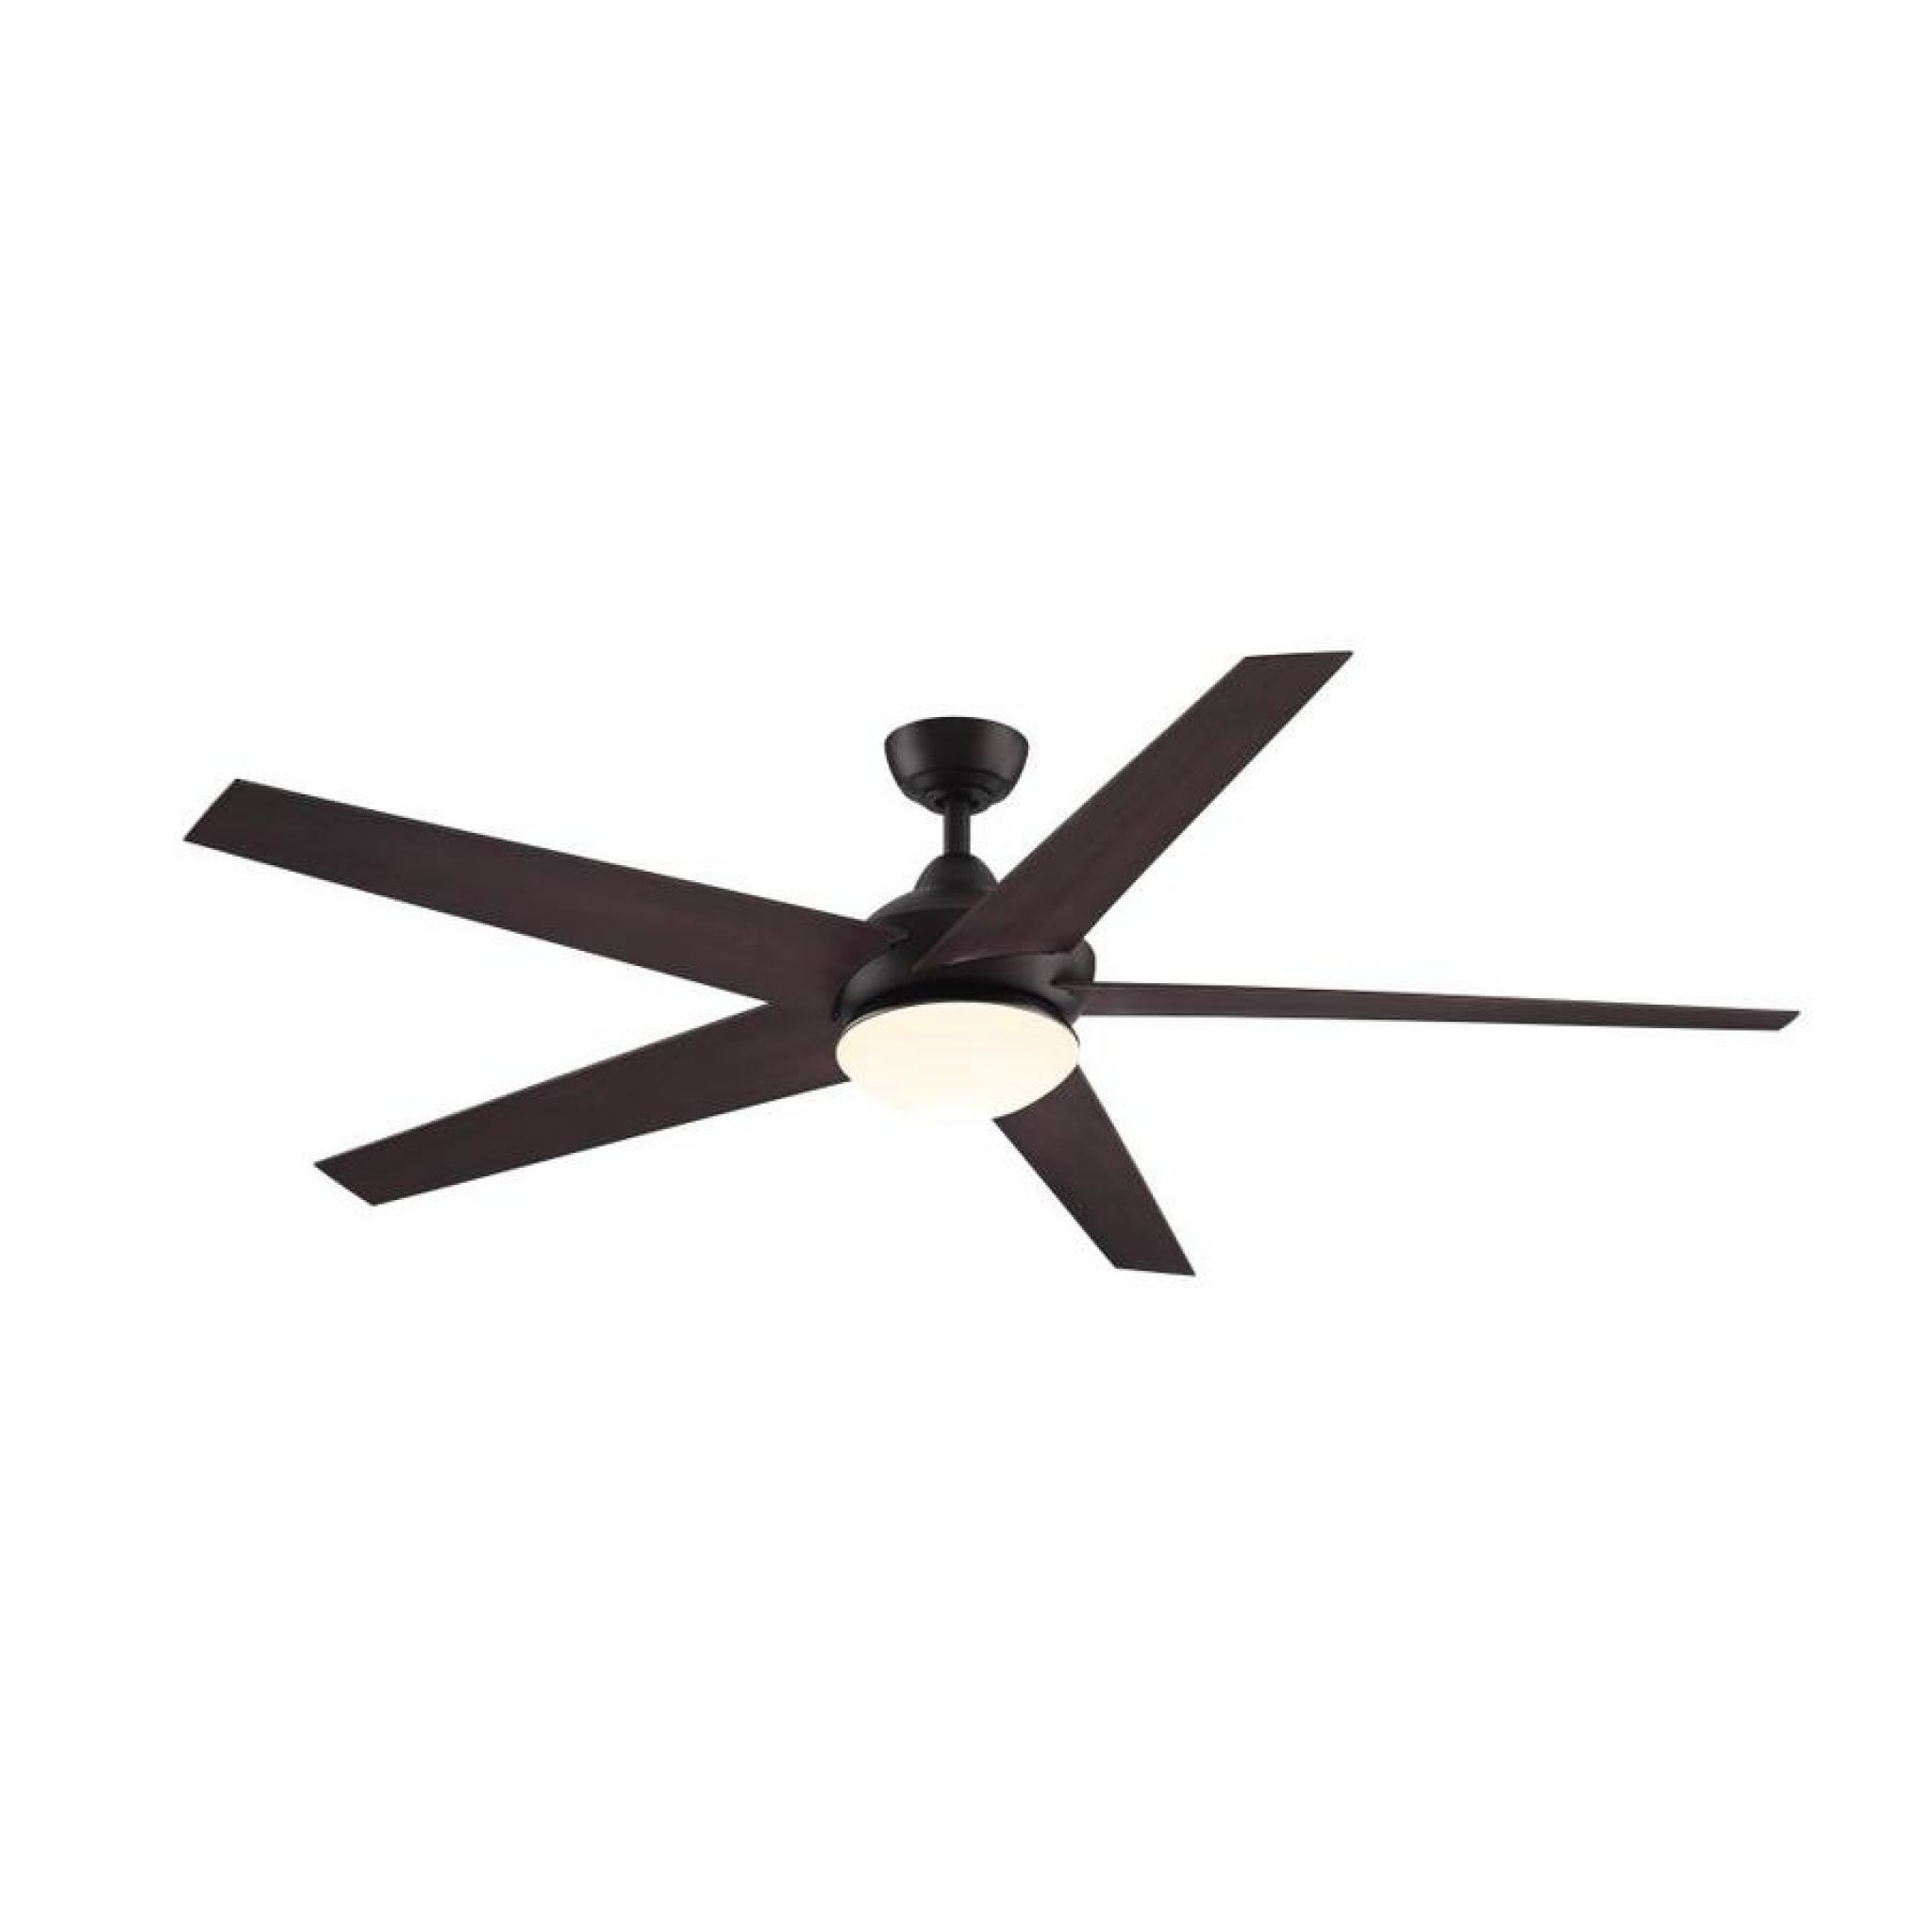 Outdoor Ceiling Fans With Lights And Remote – Interior Paint Color With Regard To 2019 Outdoor Ceiling Fans With Light And Remote (View 13 of 20)